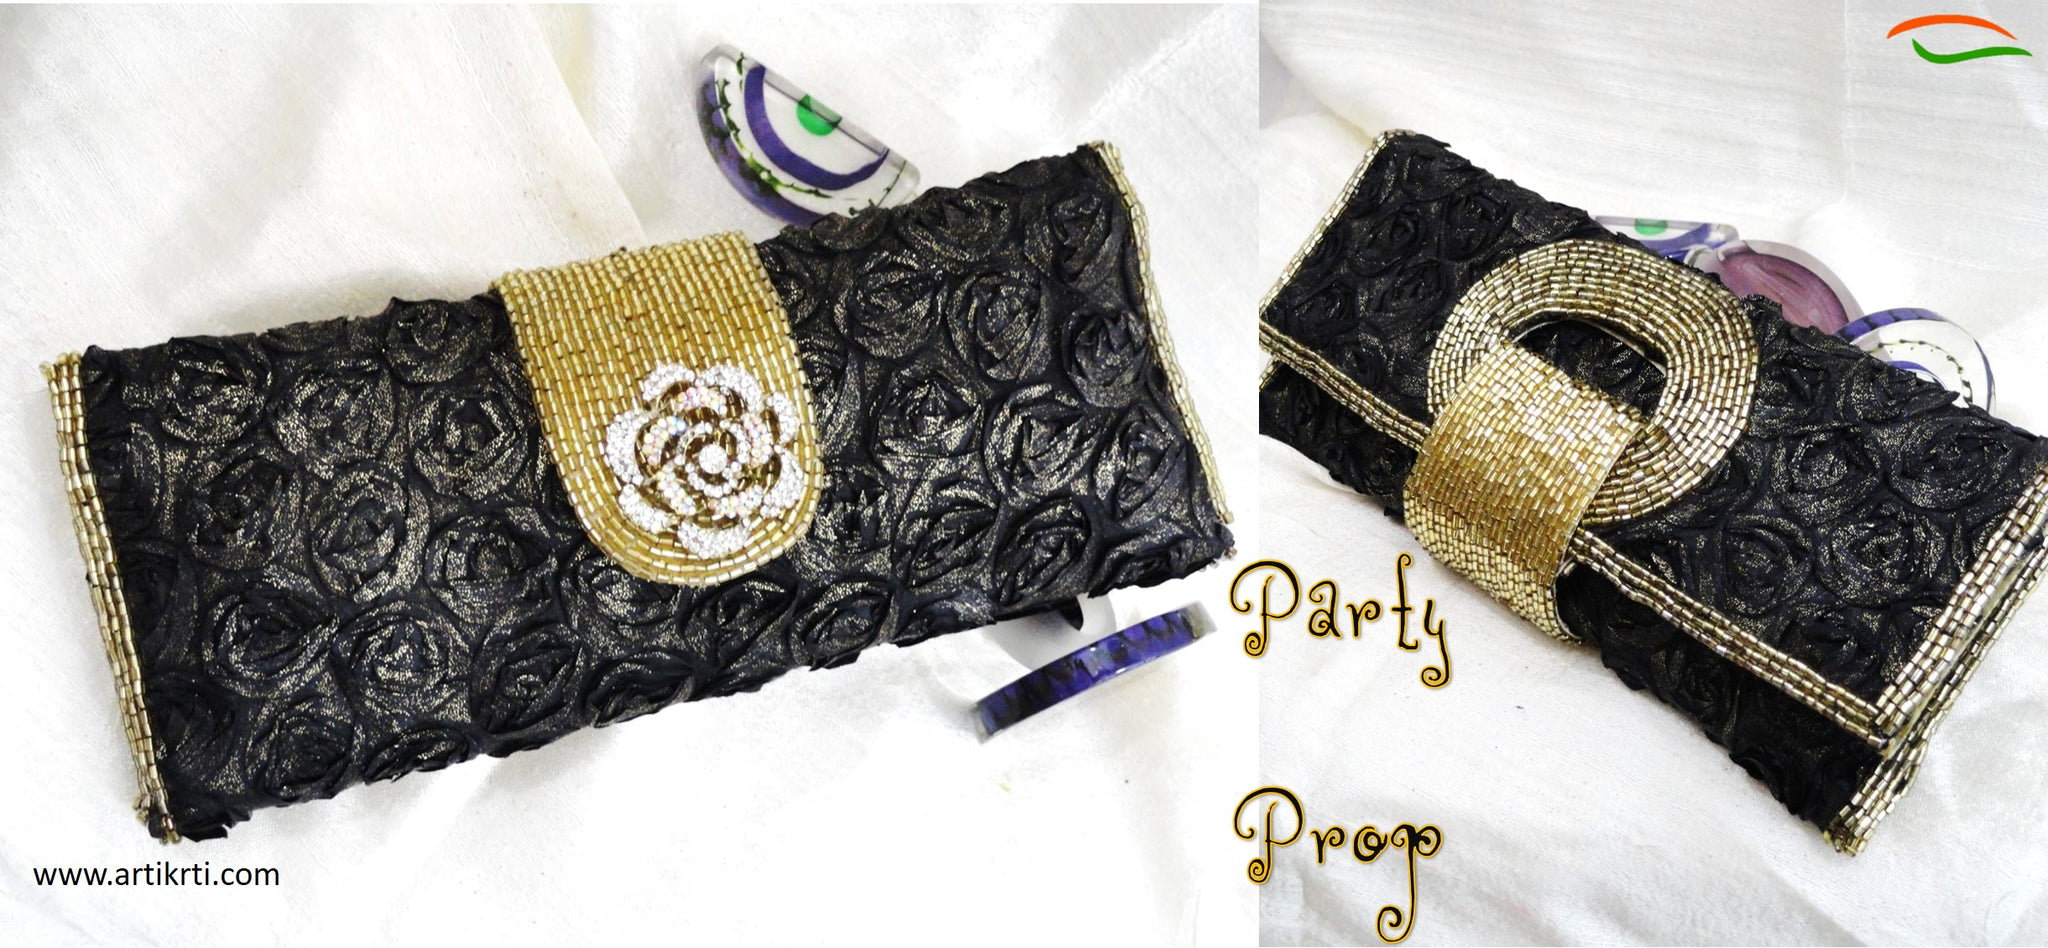 party-handbags-clutches-wrist-bags-leather-bags-indian-sequins-beads-silk-artikrti